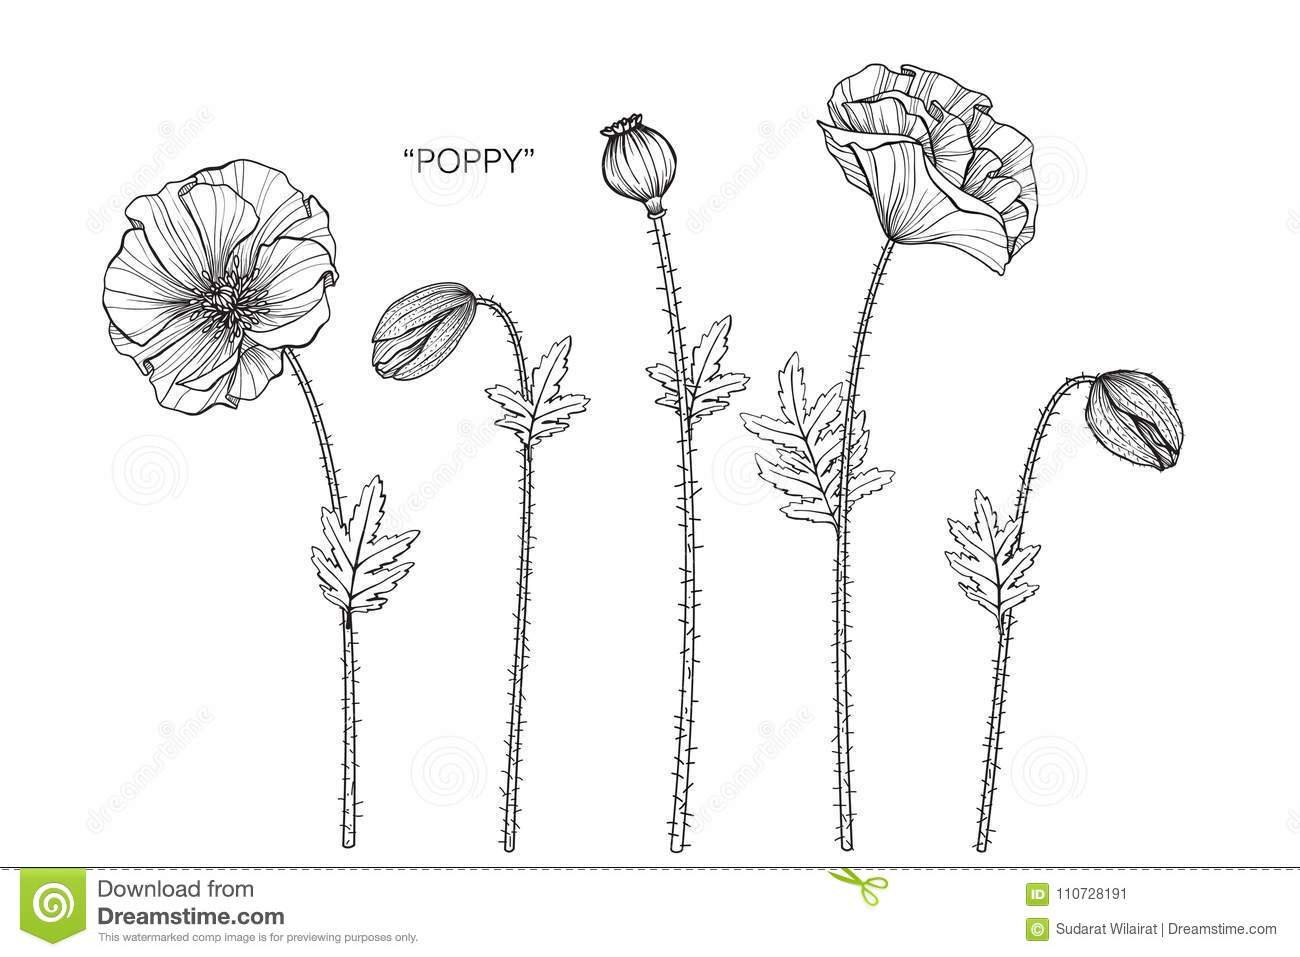 Poppy flower drawing illustration black and white with line art download poppy flower drawing illustration black and white with line art stock illustration mightylinksfo